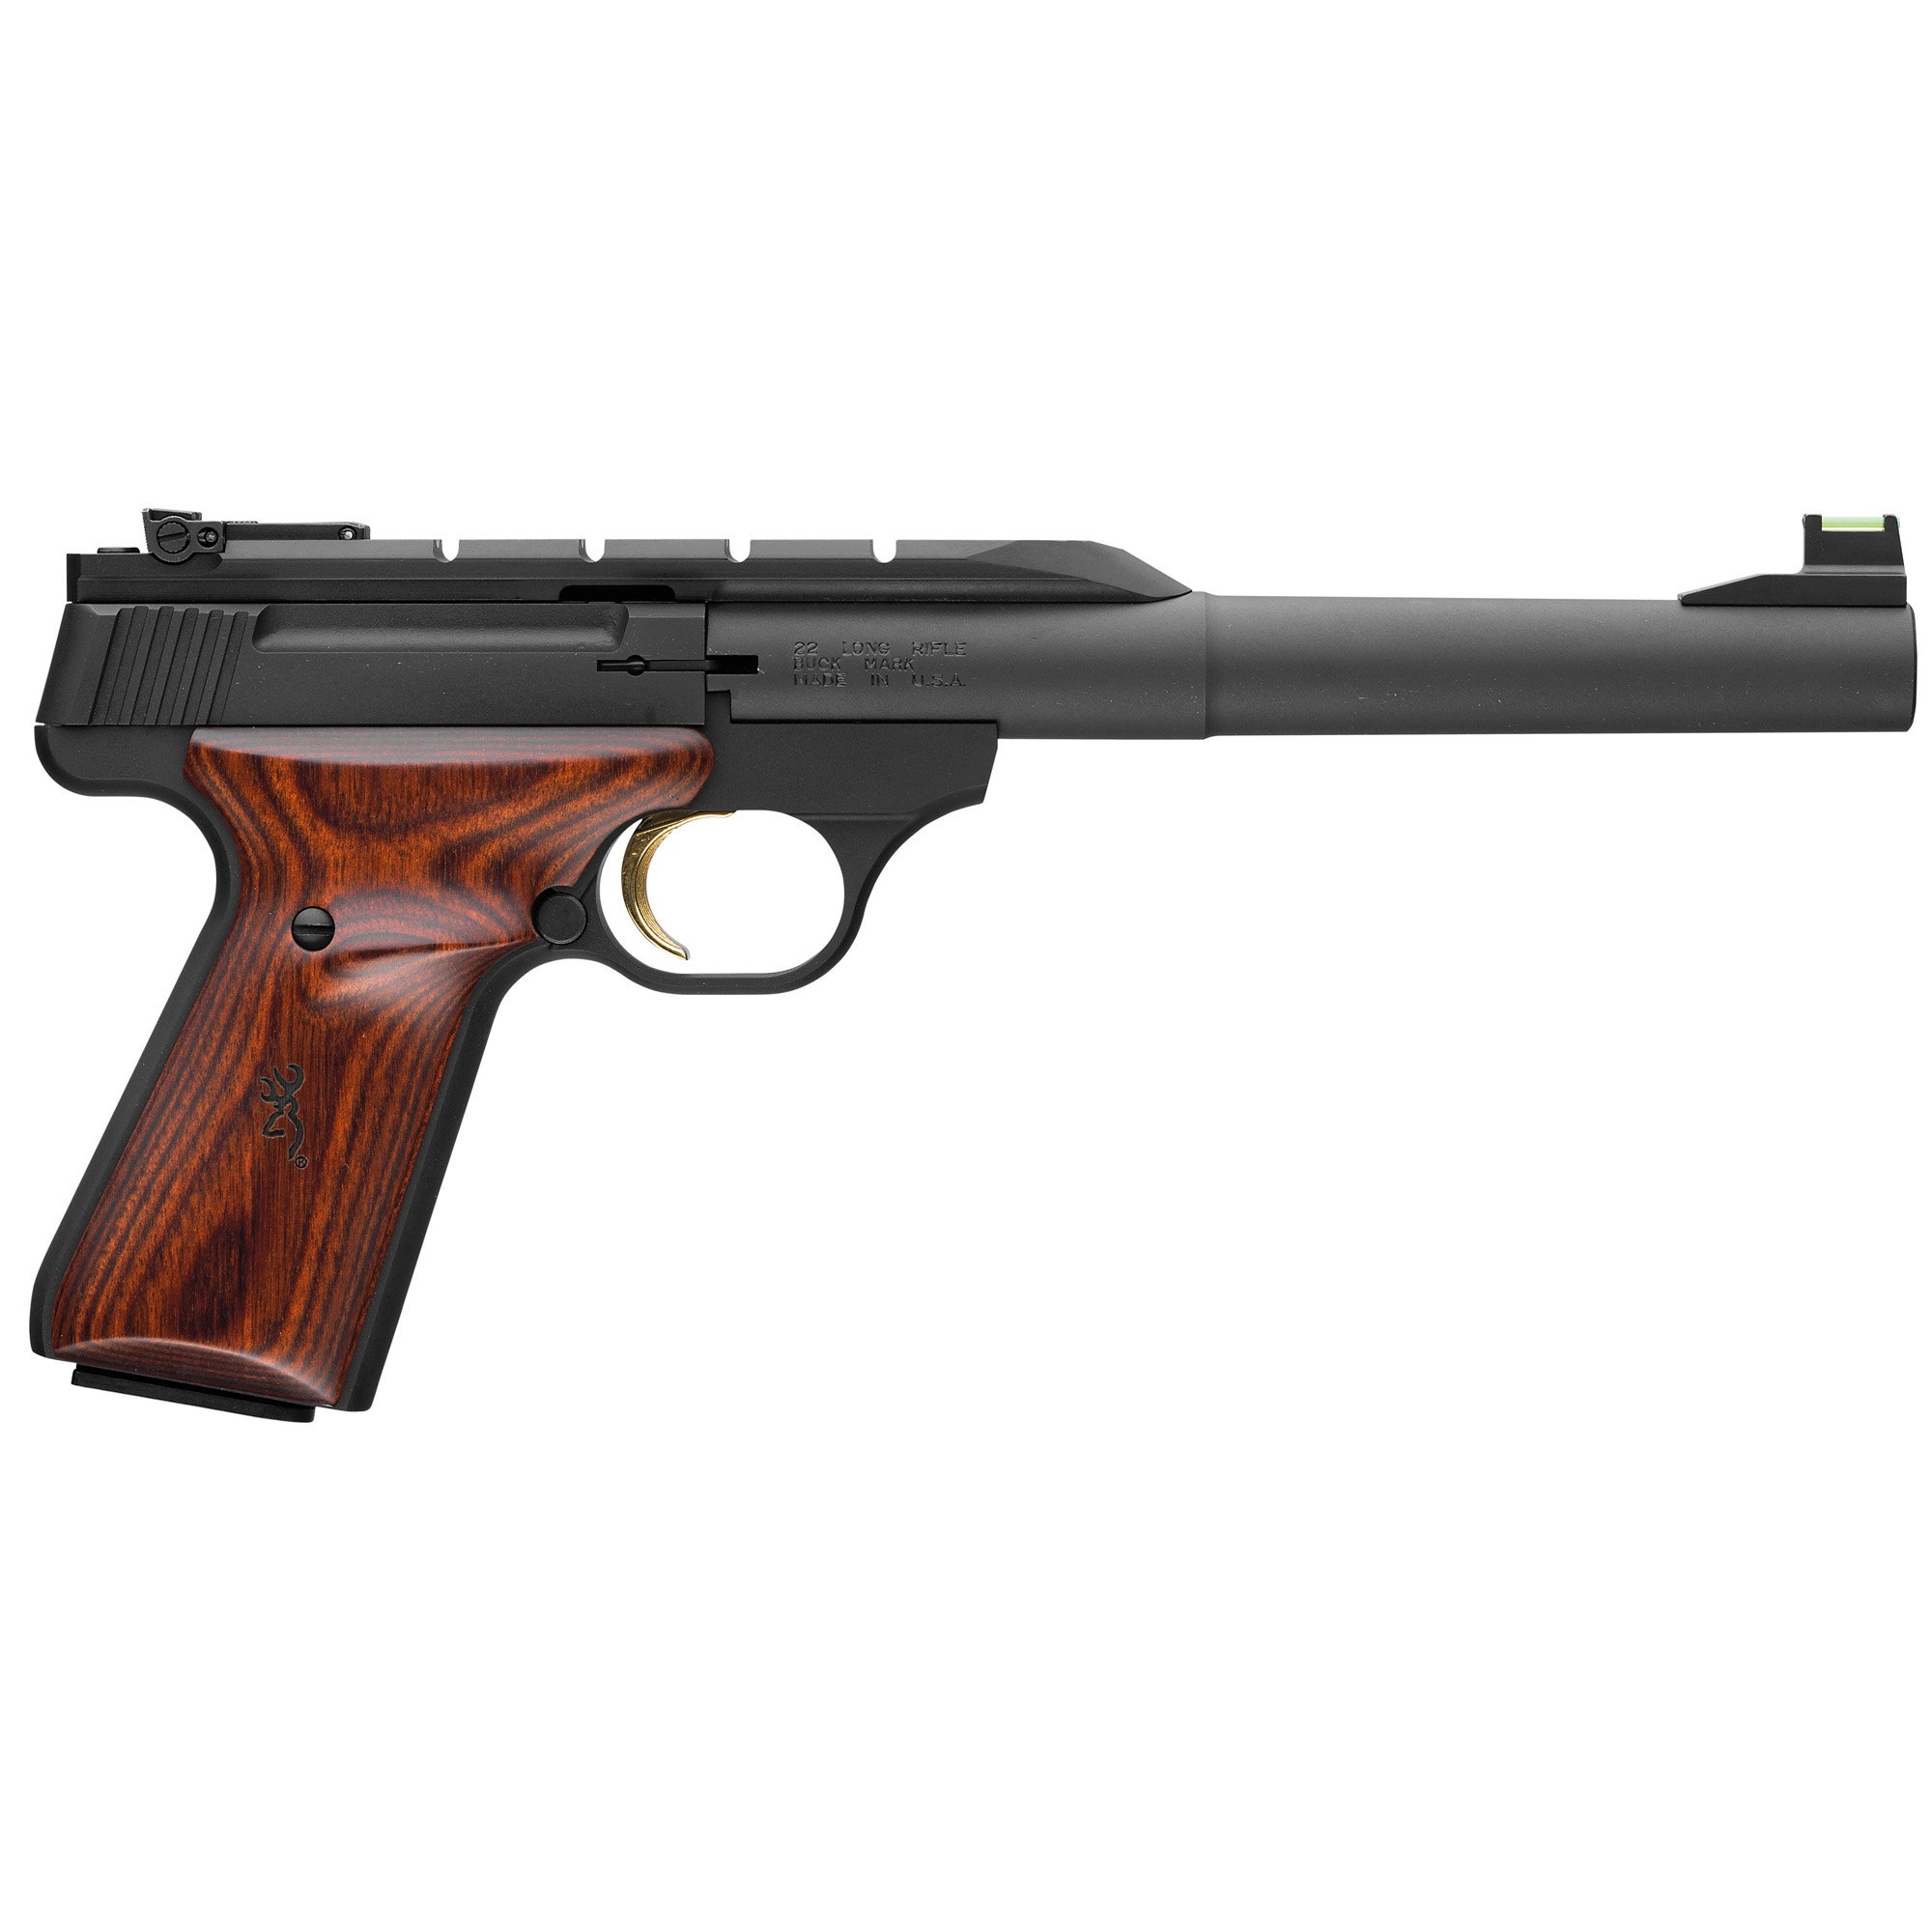 "Brown Bm Hunter 22lr 7.25"" Wlnt/blk"